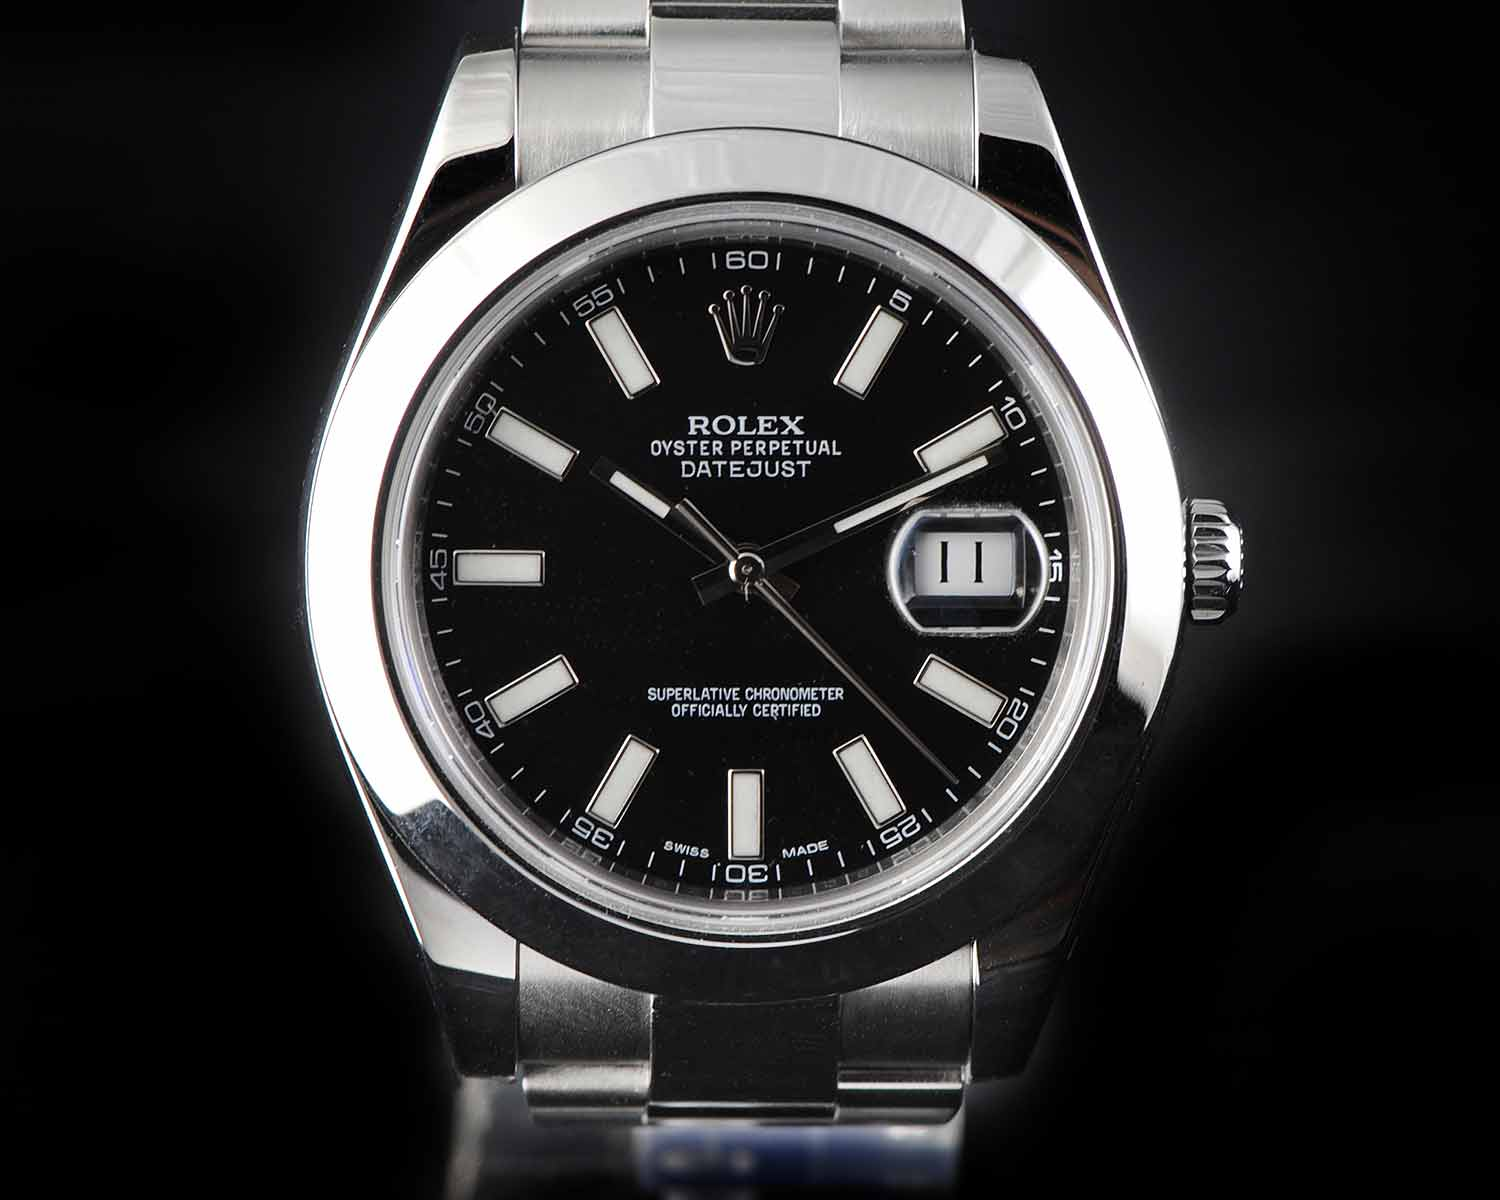 ROLEX DATEJUST II OYSTER PERPETUAL 116300 STAINLESS STEEL WATCH